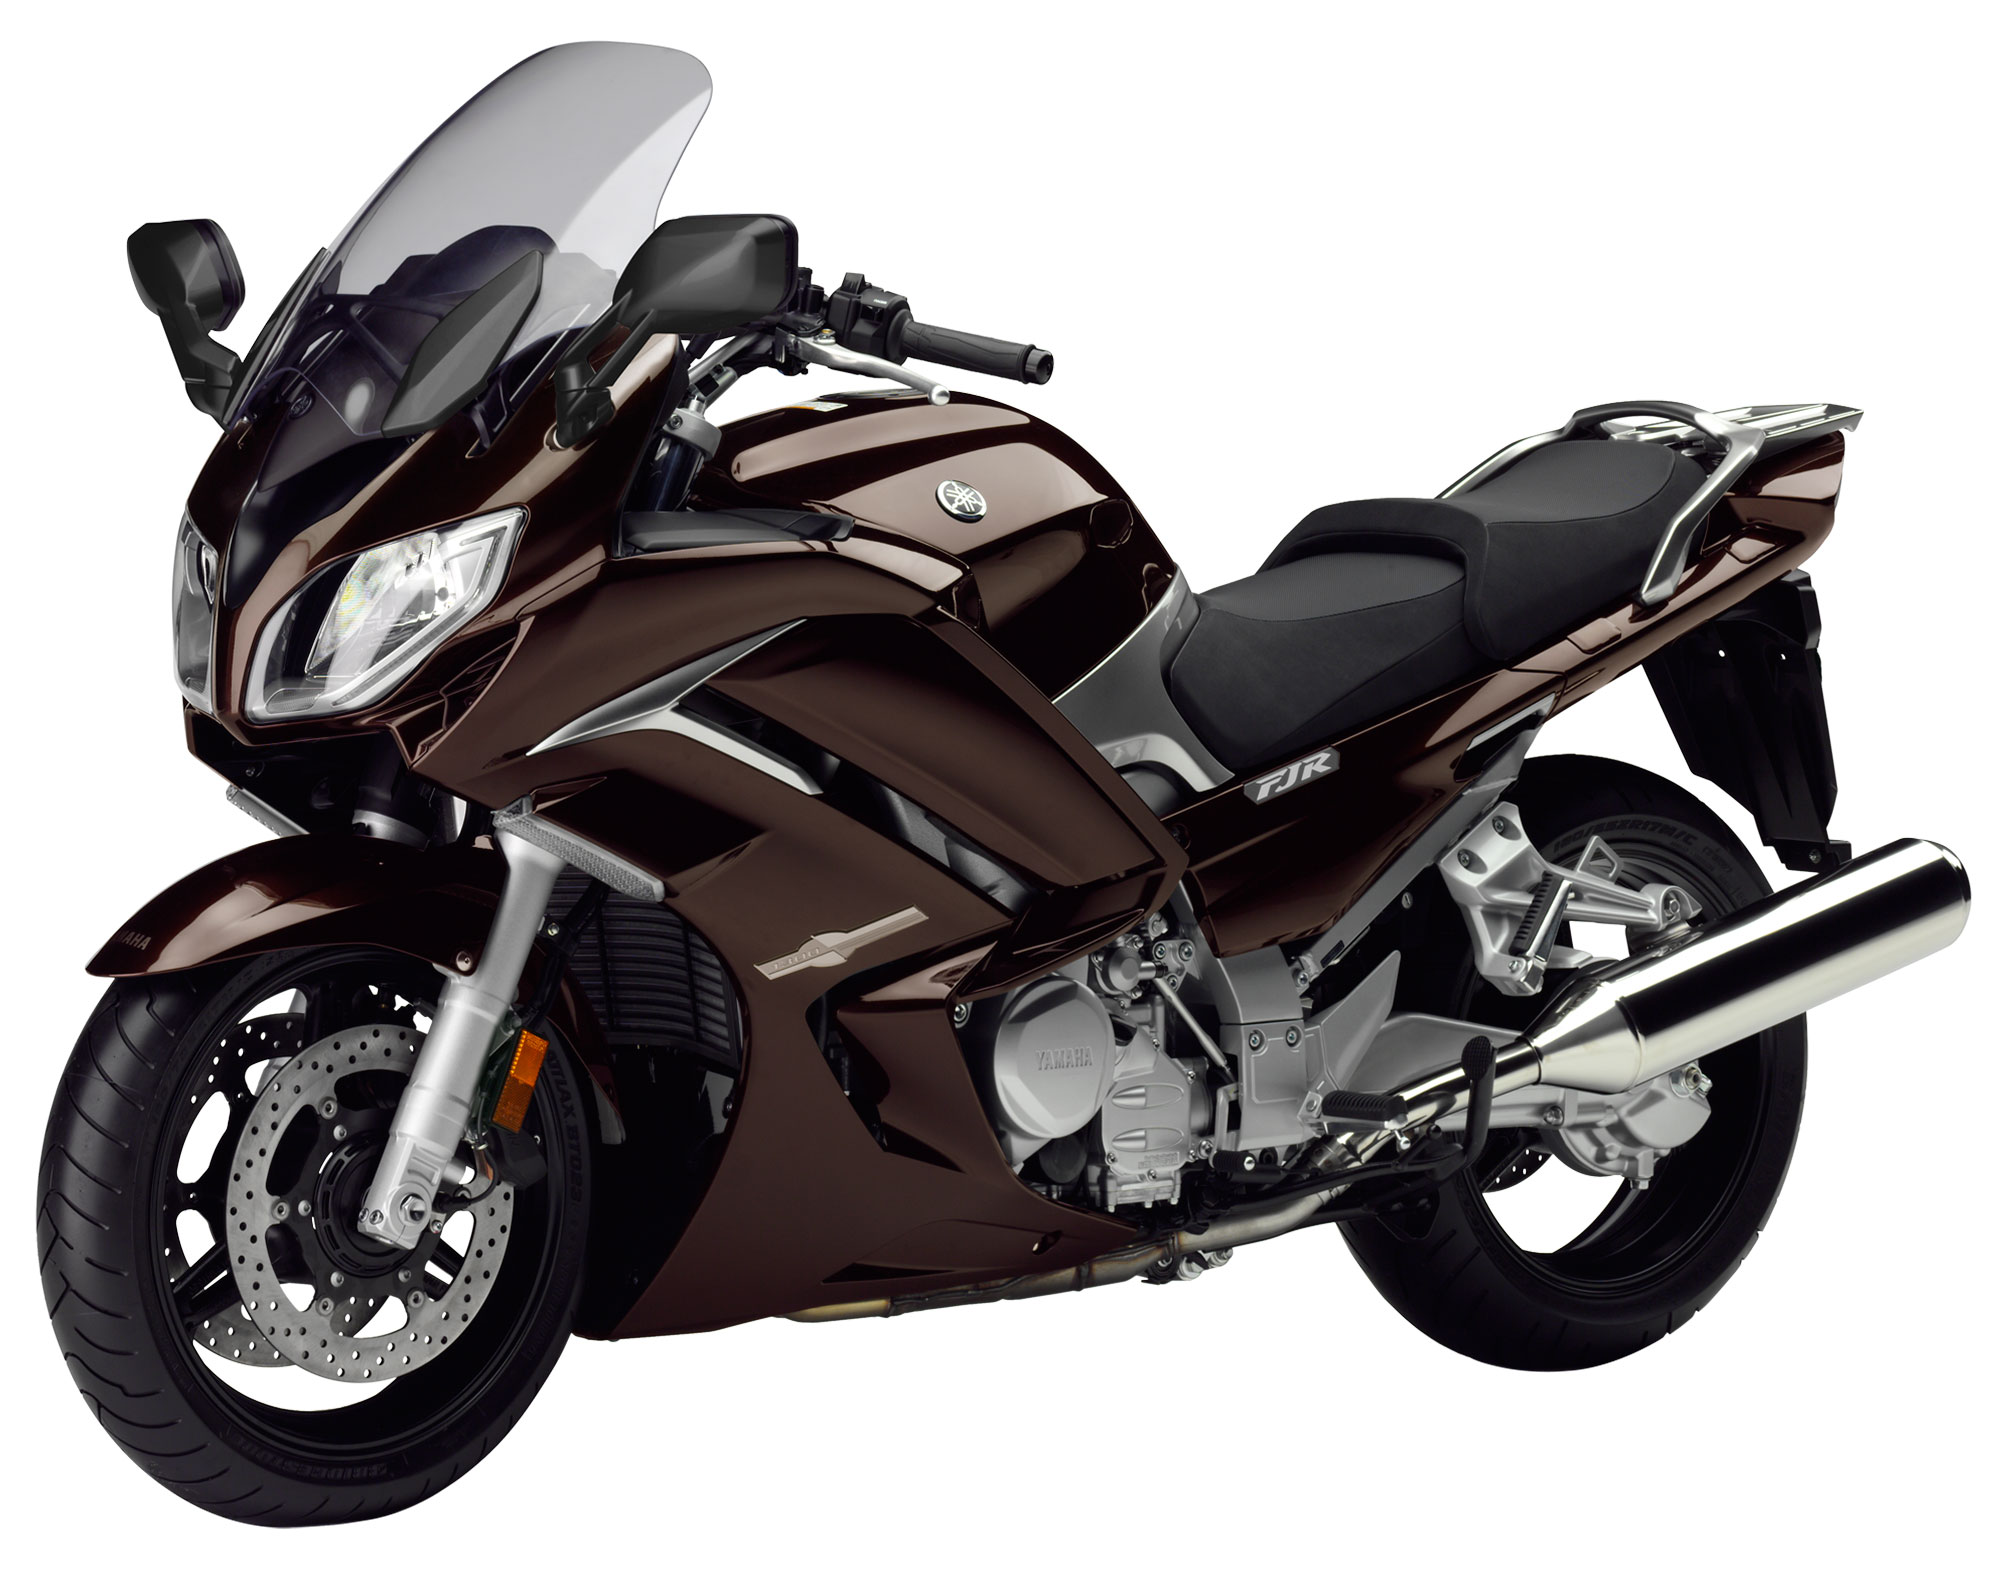 Yamaha FJR 1300 AS 2009 #9